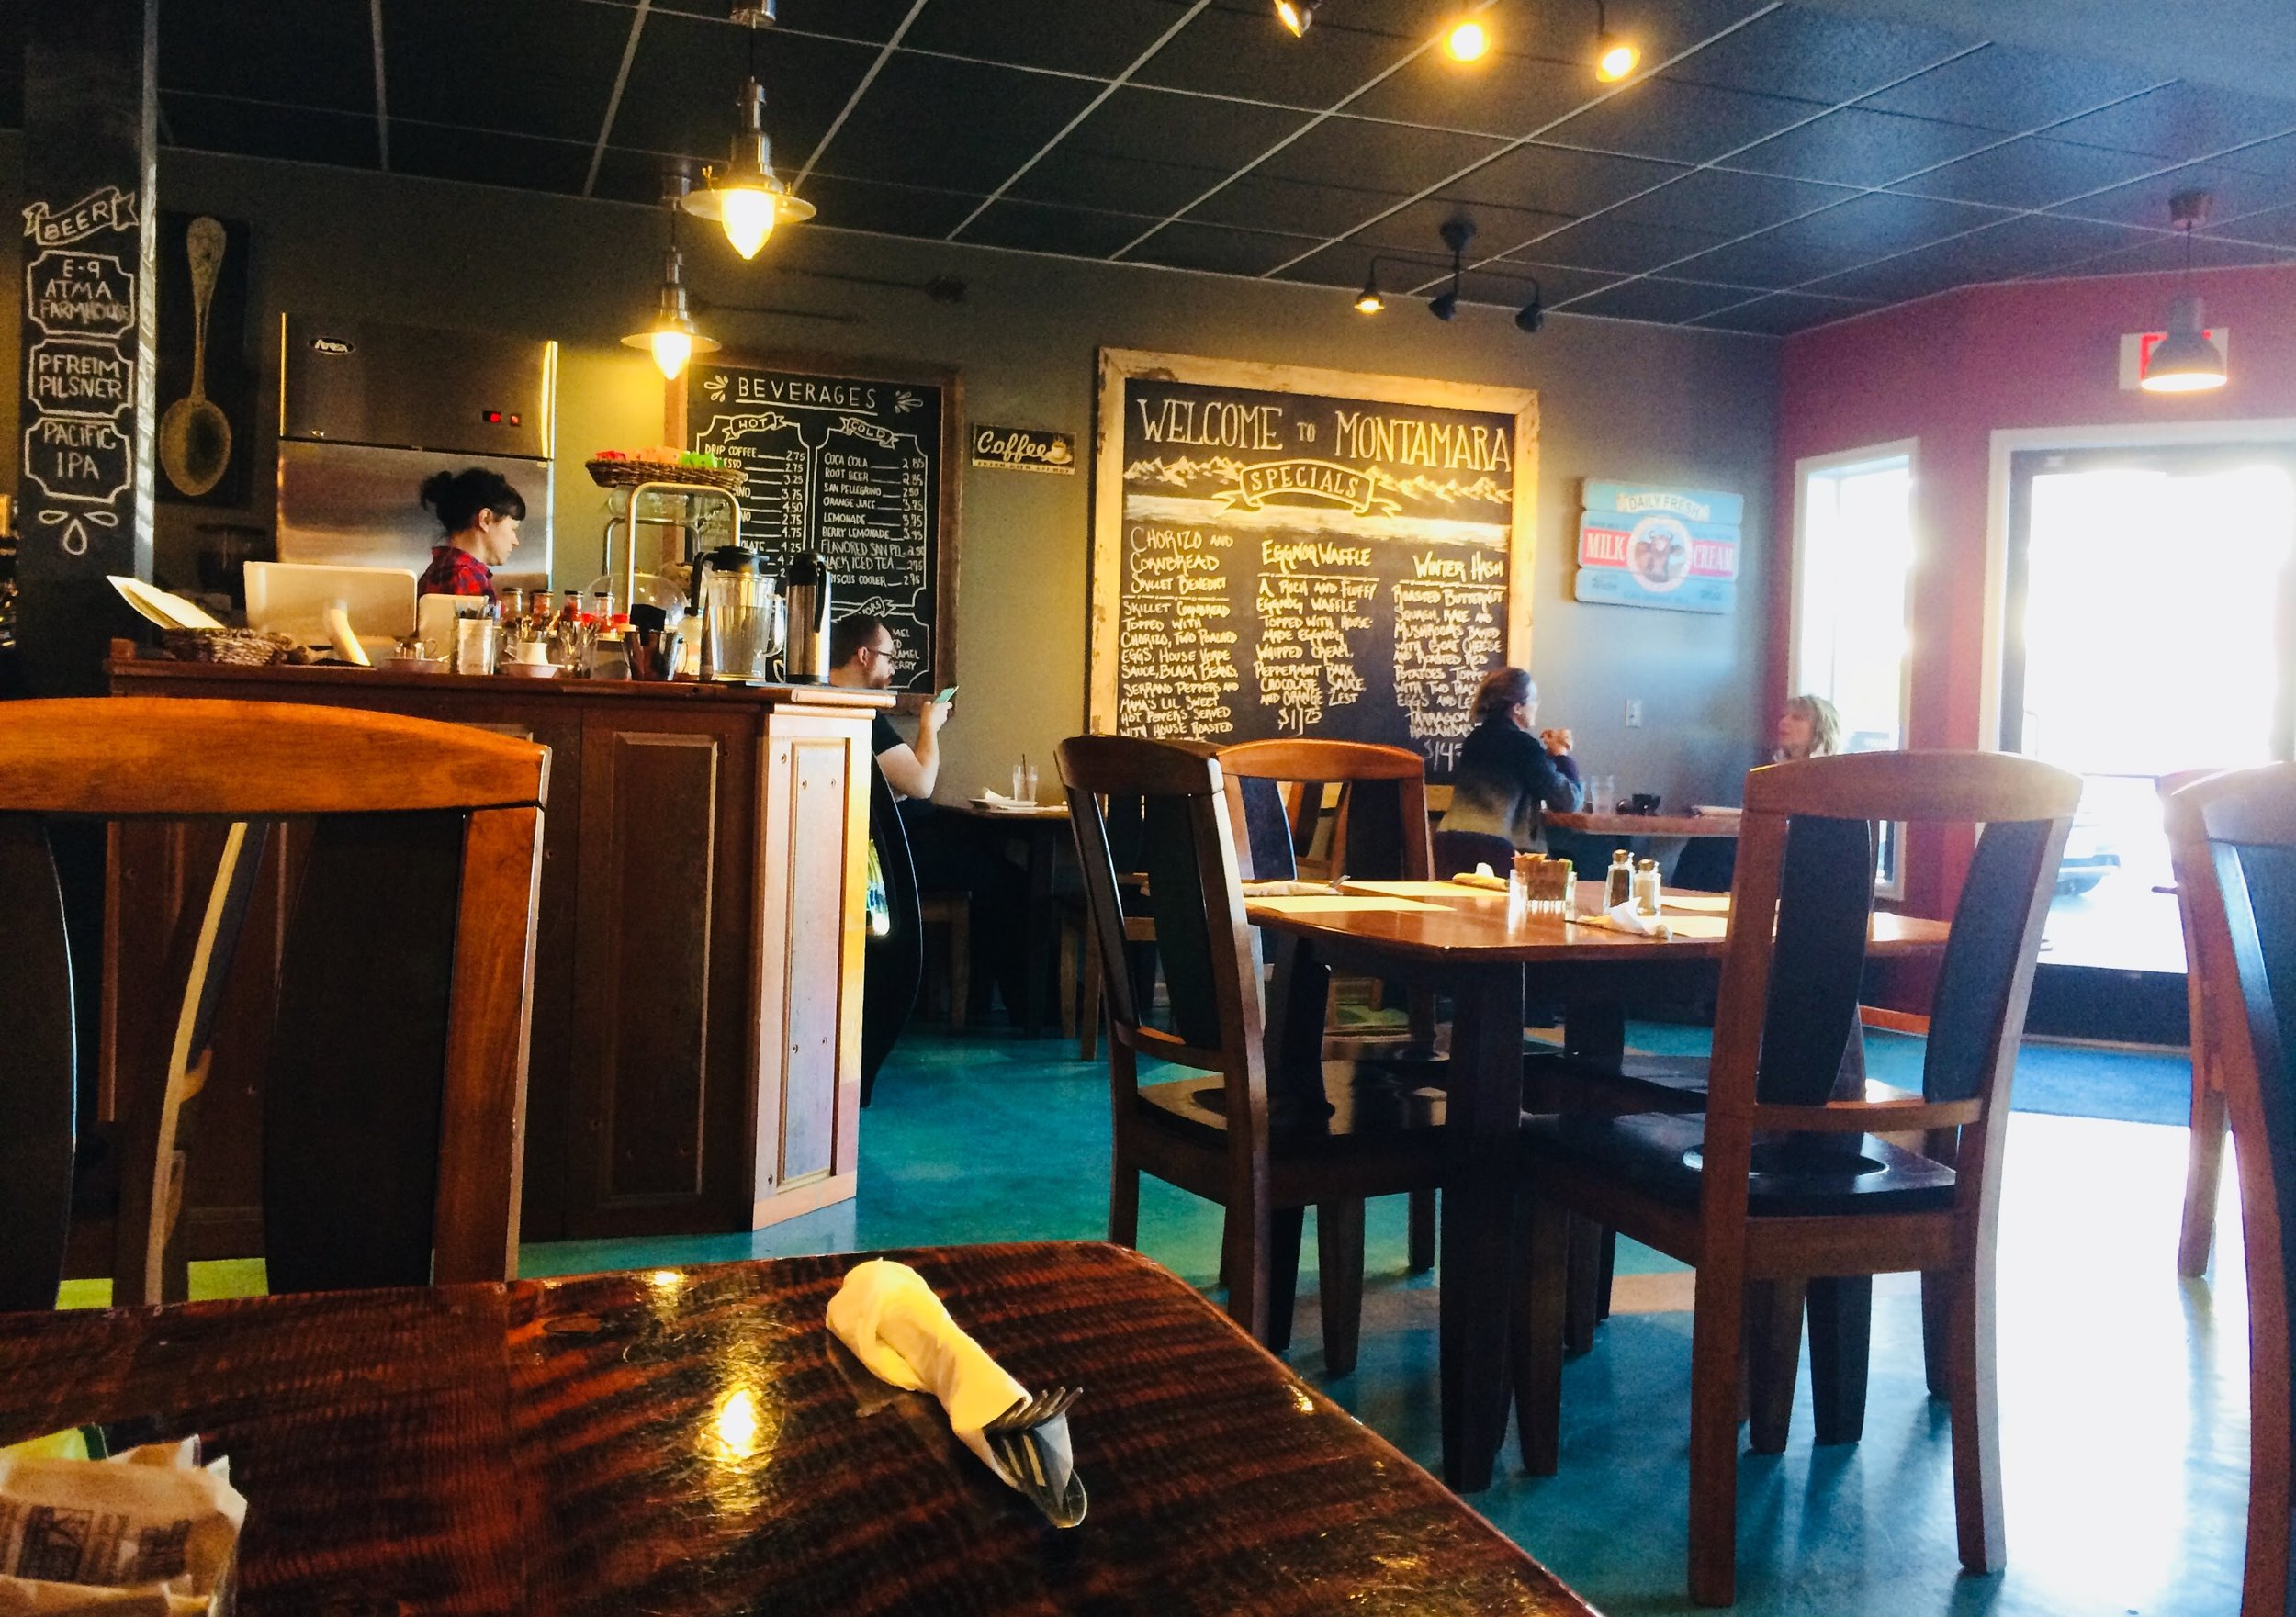 Montamara Kitchen: a warm, cozy place with delicious, made-from-scratch food.